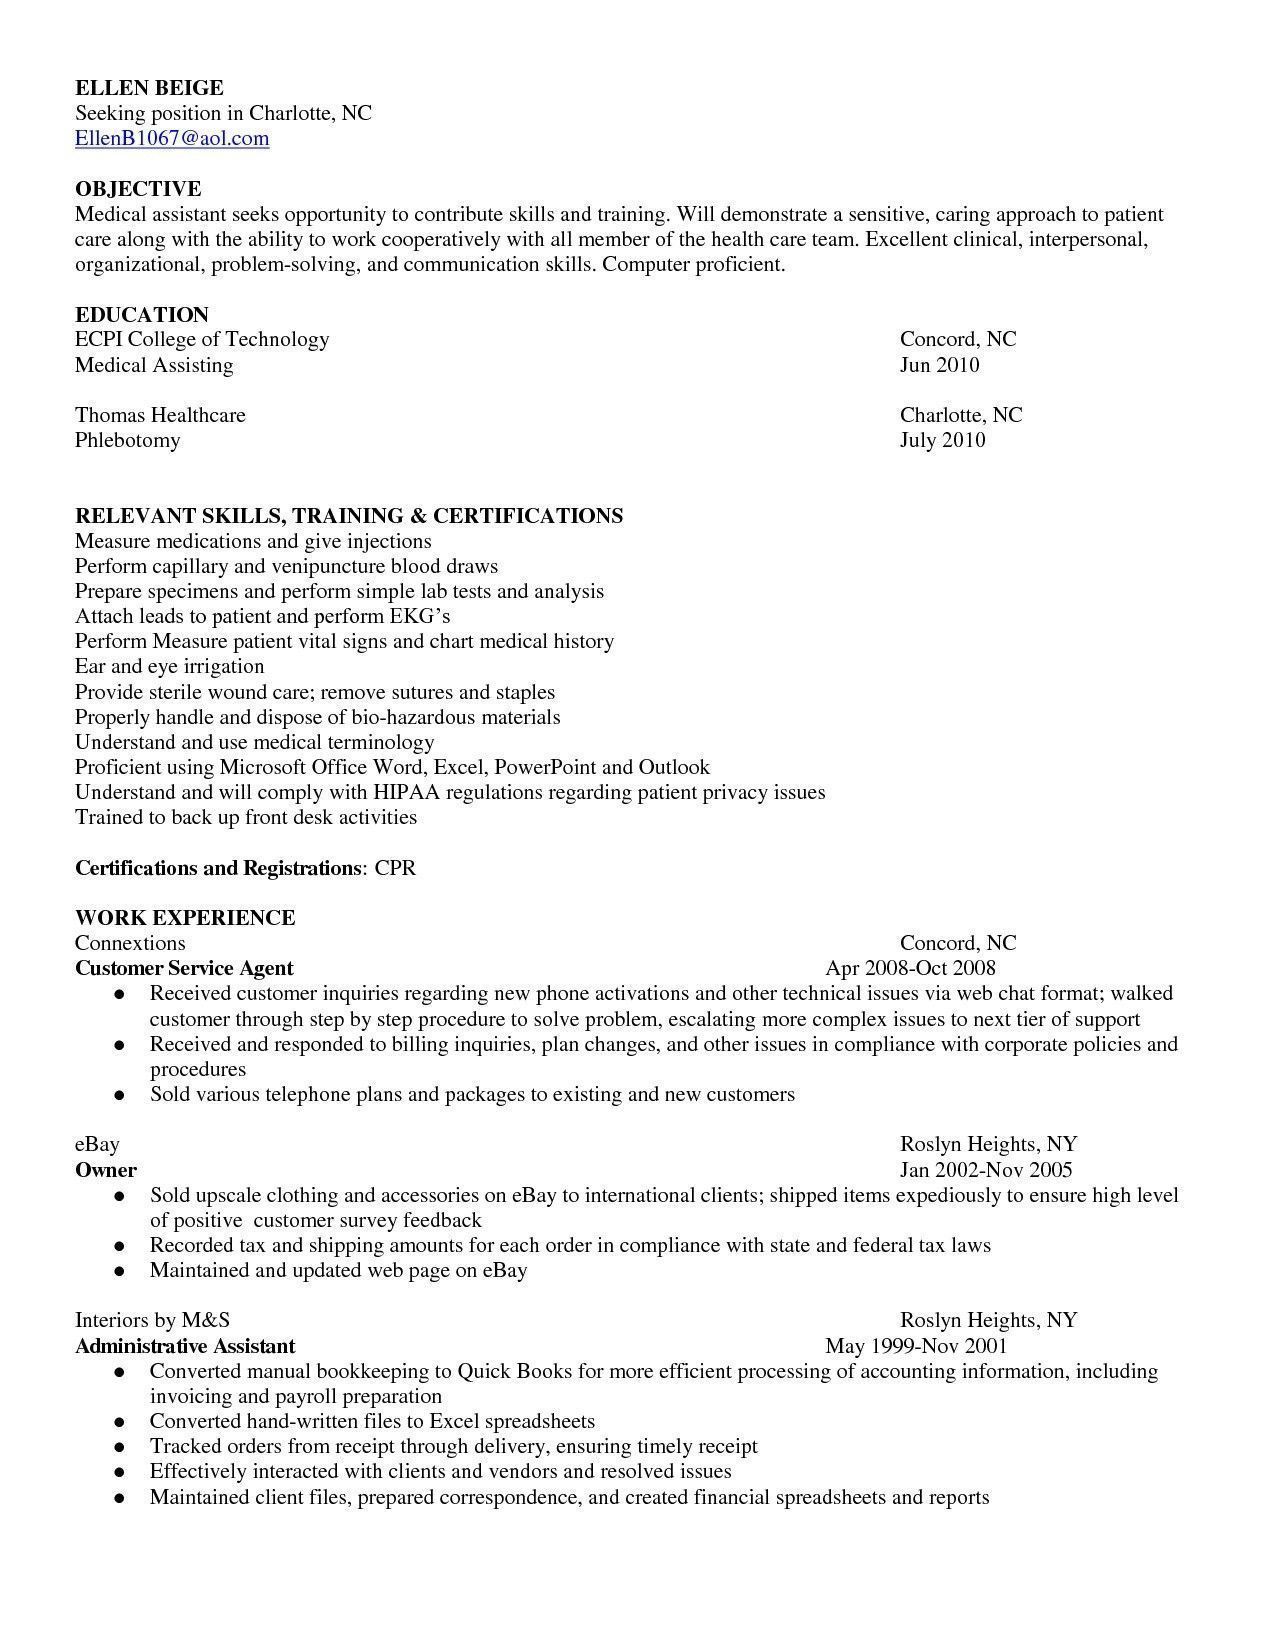 medical assisting resume objectives Medical assistant